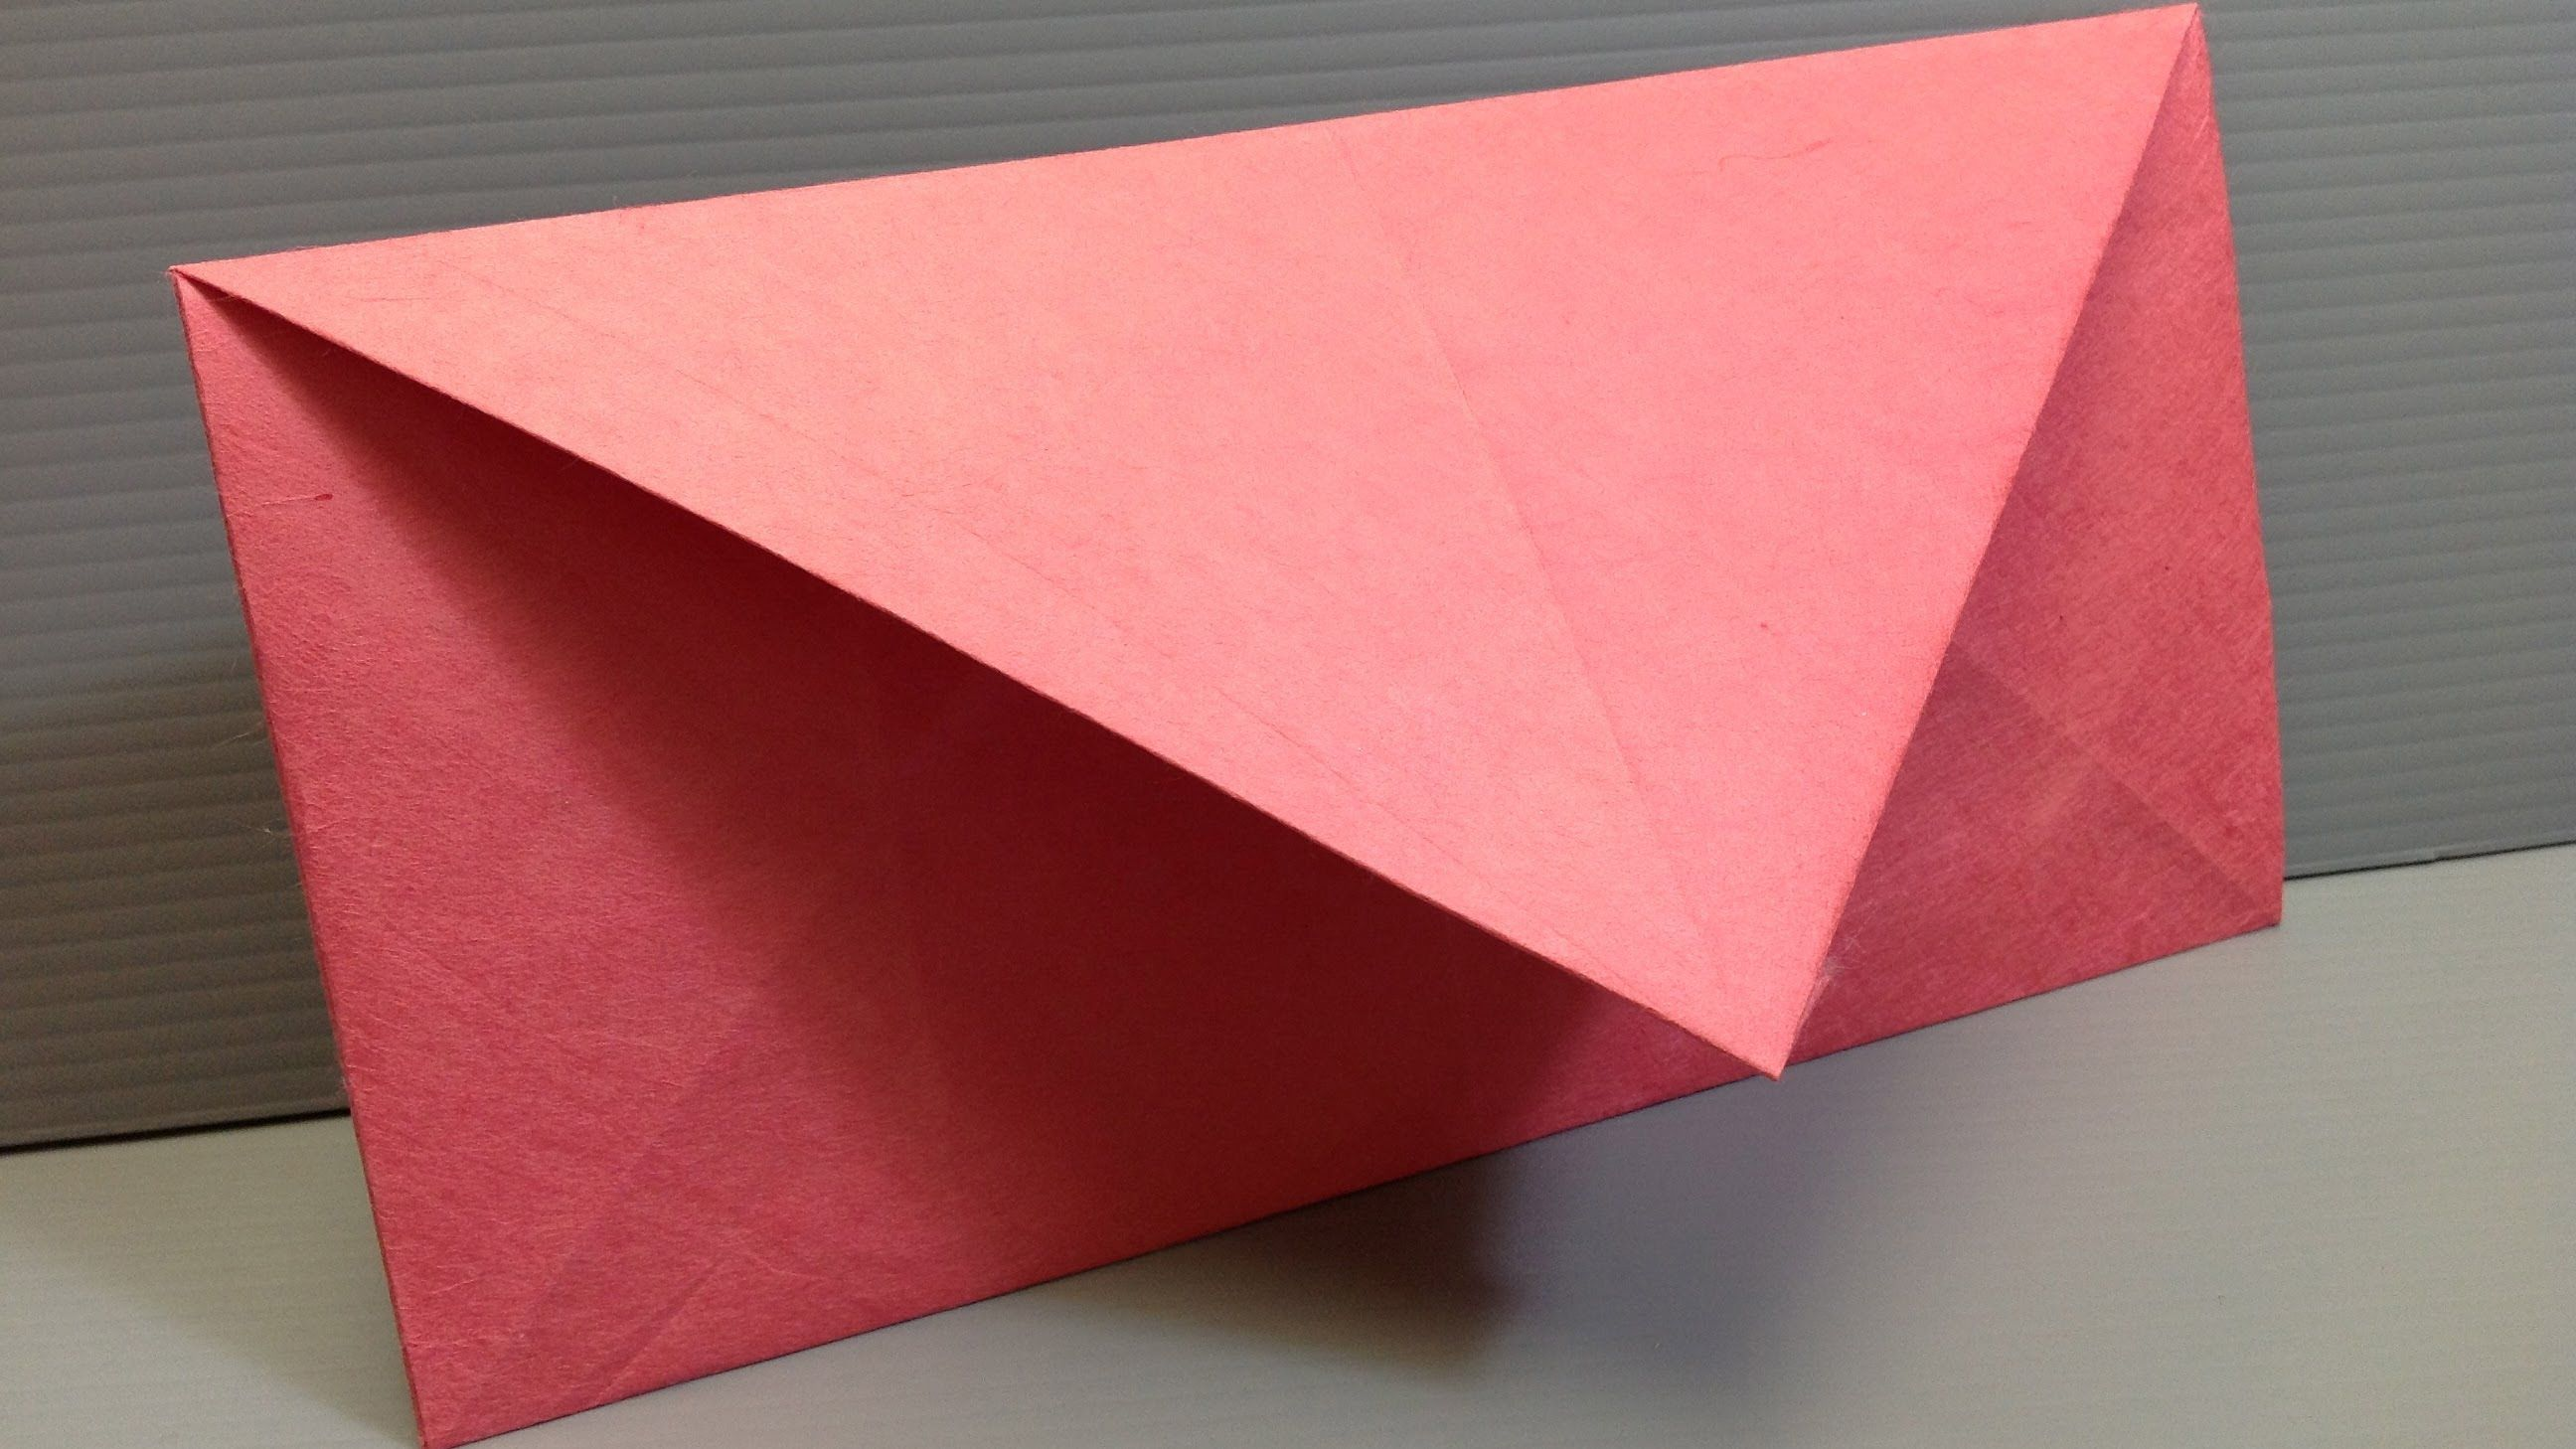 How To Make An Origami Envelope In Us Letter Size Or Any Size